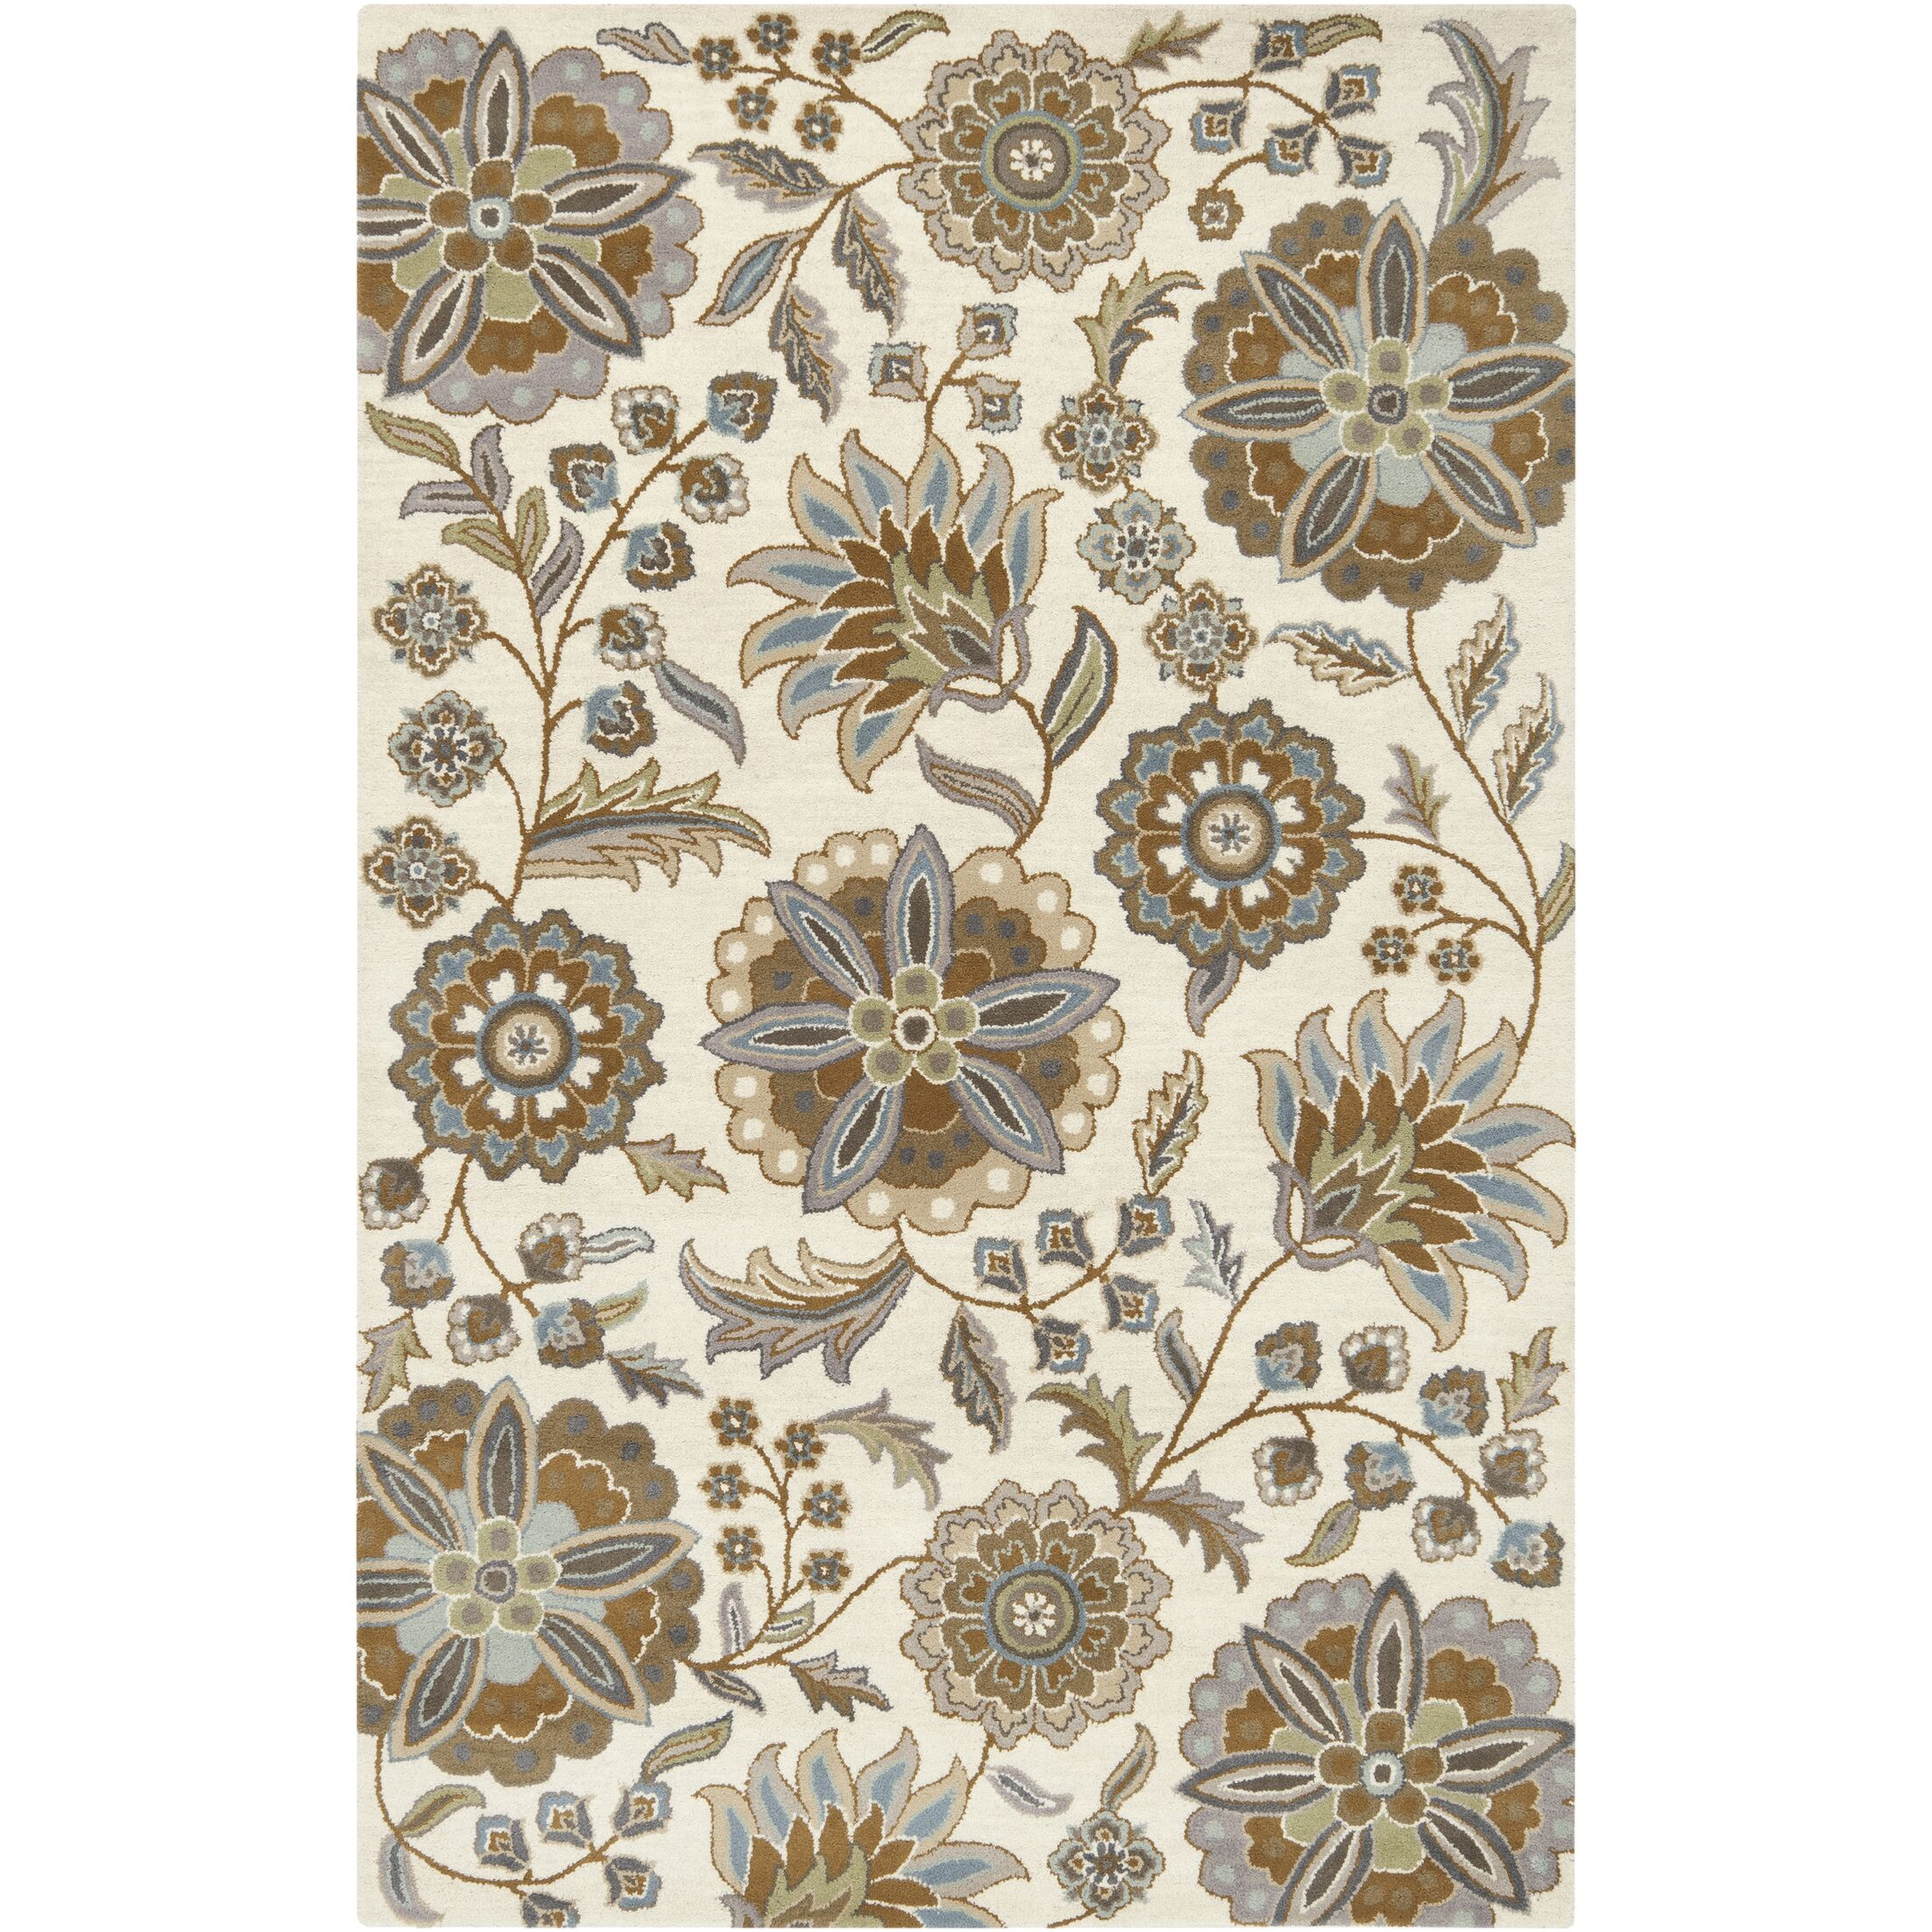 Jasmine Parchment & Moss Tufted Wool Area Rug Rug Size: Rectangle 6' x 9'